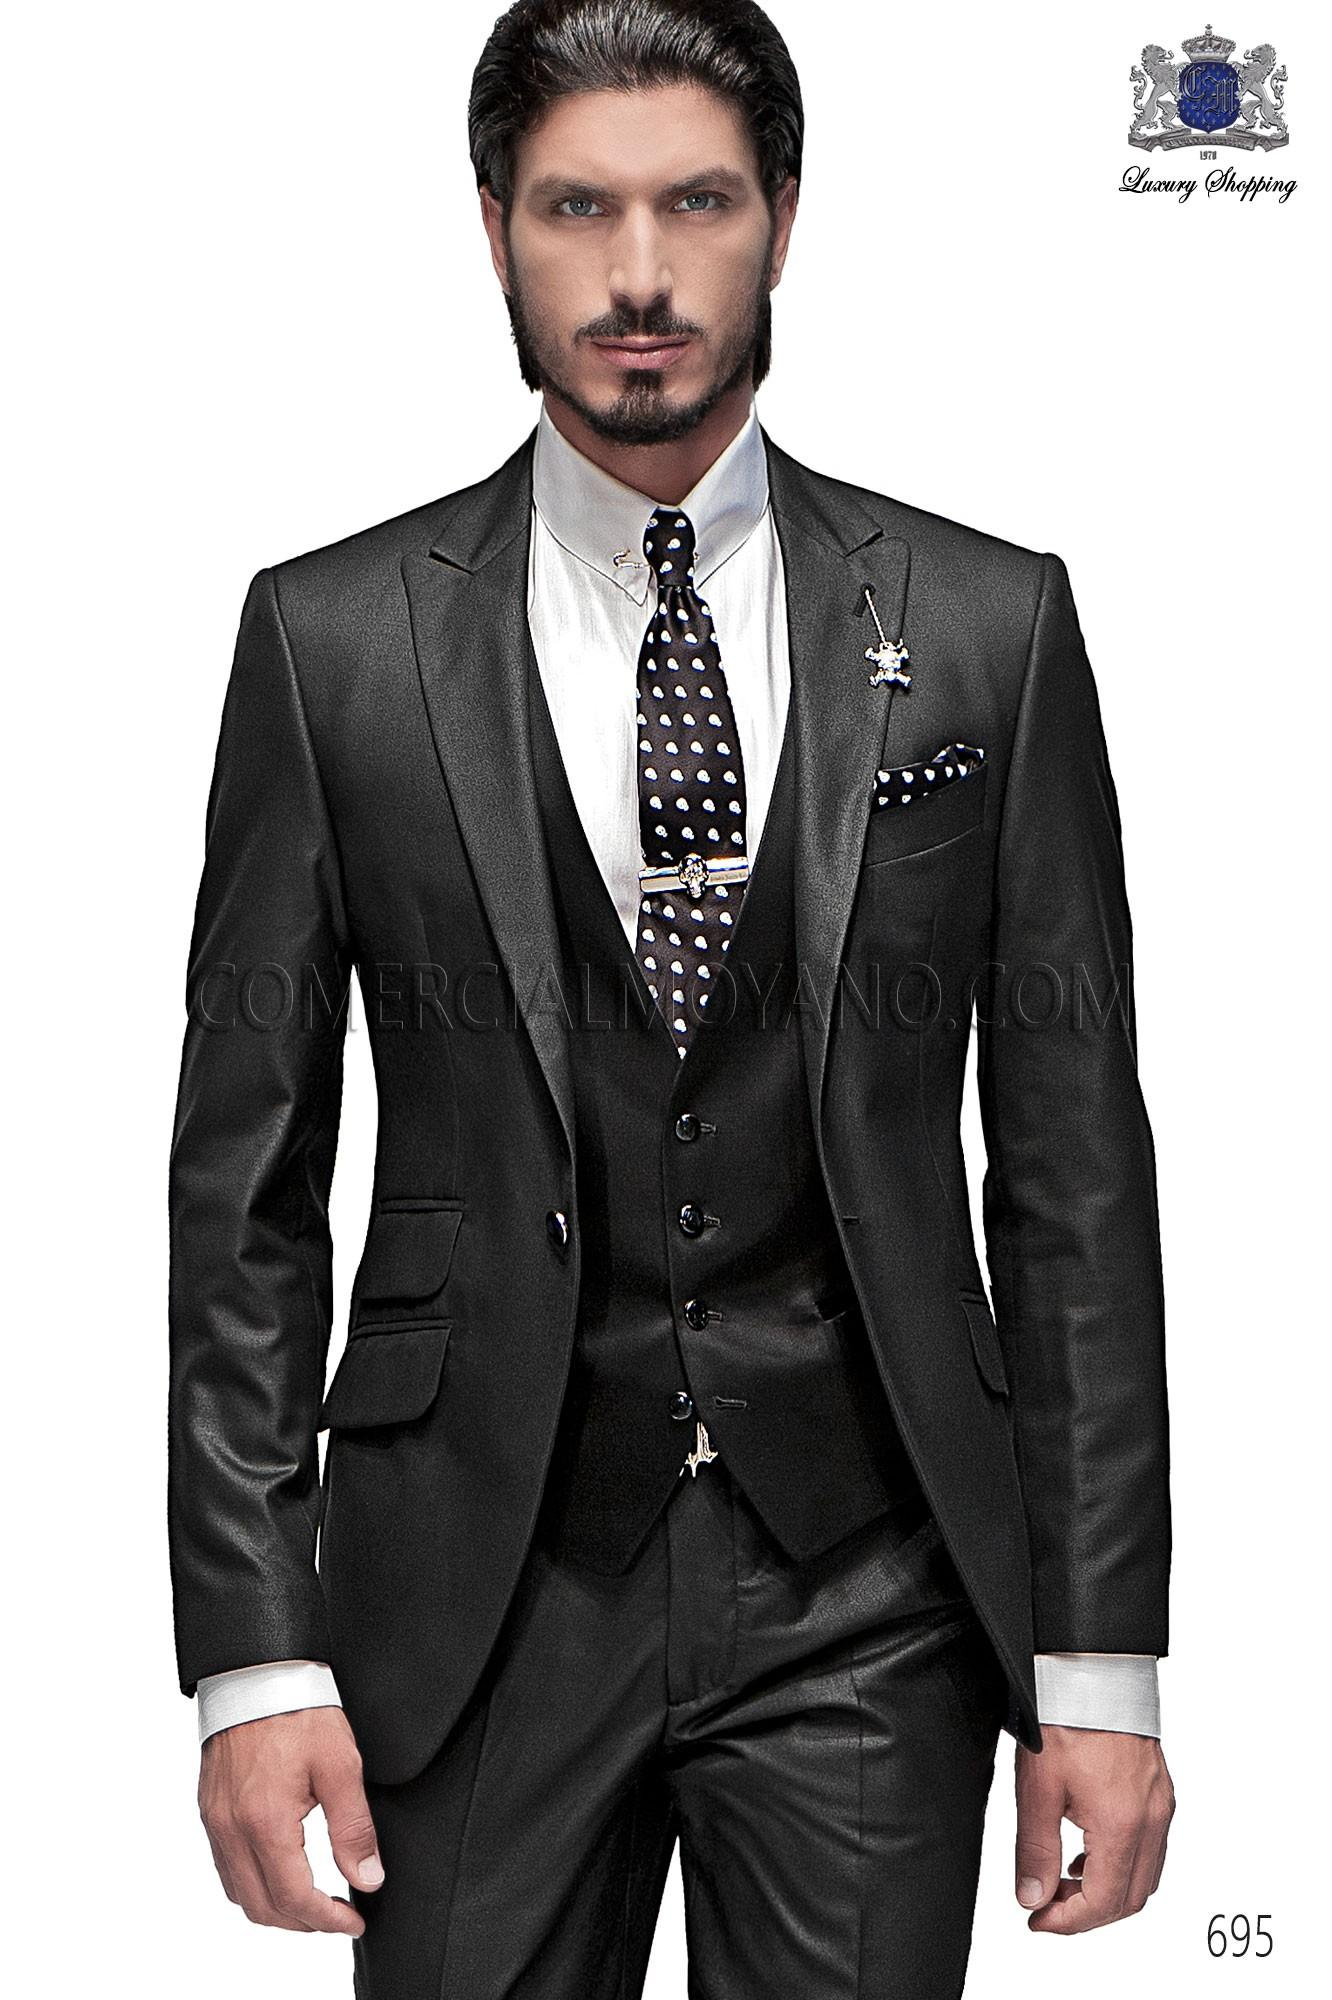 Custom Made 2015 Charcoal Groom Tuxedos Wedding Suits For Men ...